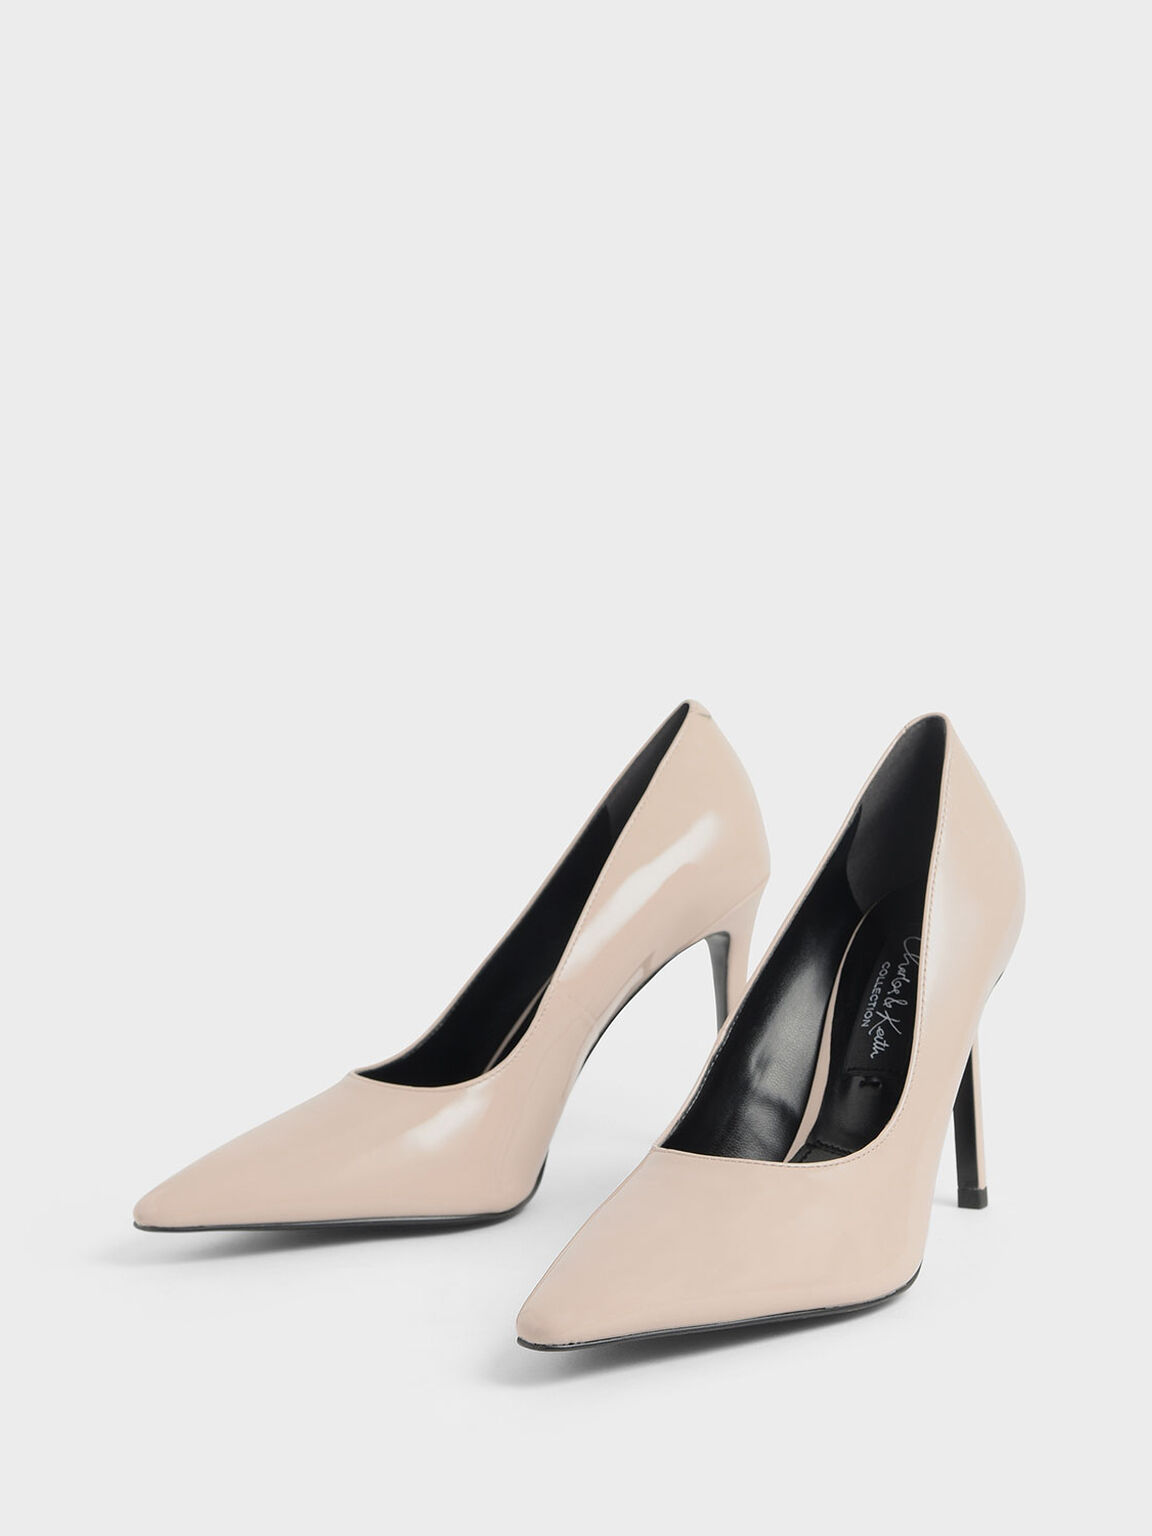 Patent Leather Pointed Toe Stiletto Pumps, Nude, hi-res